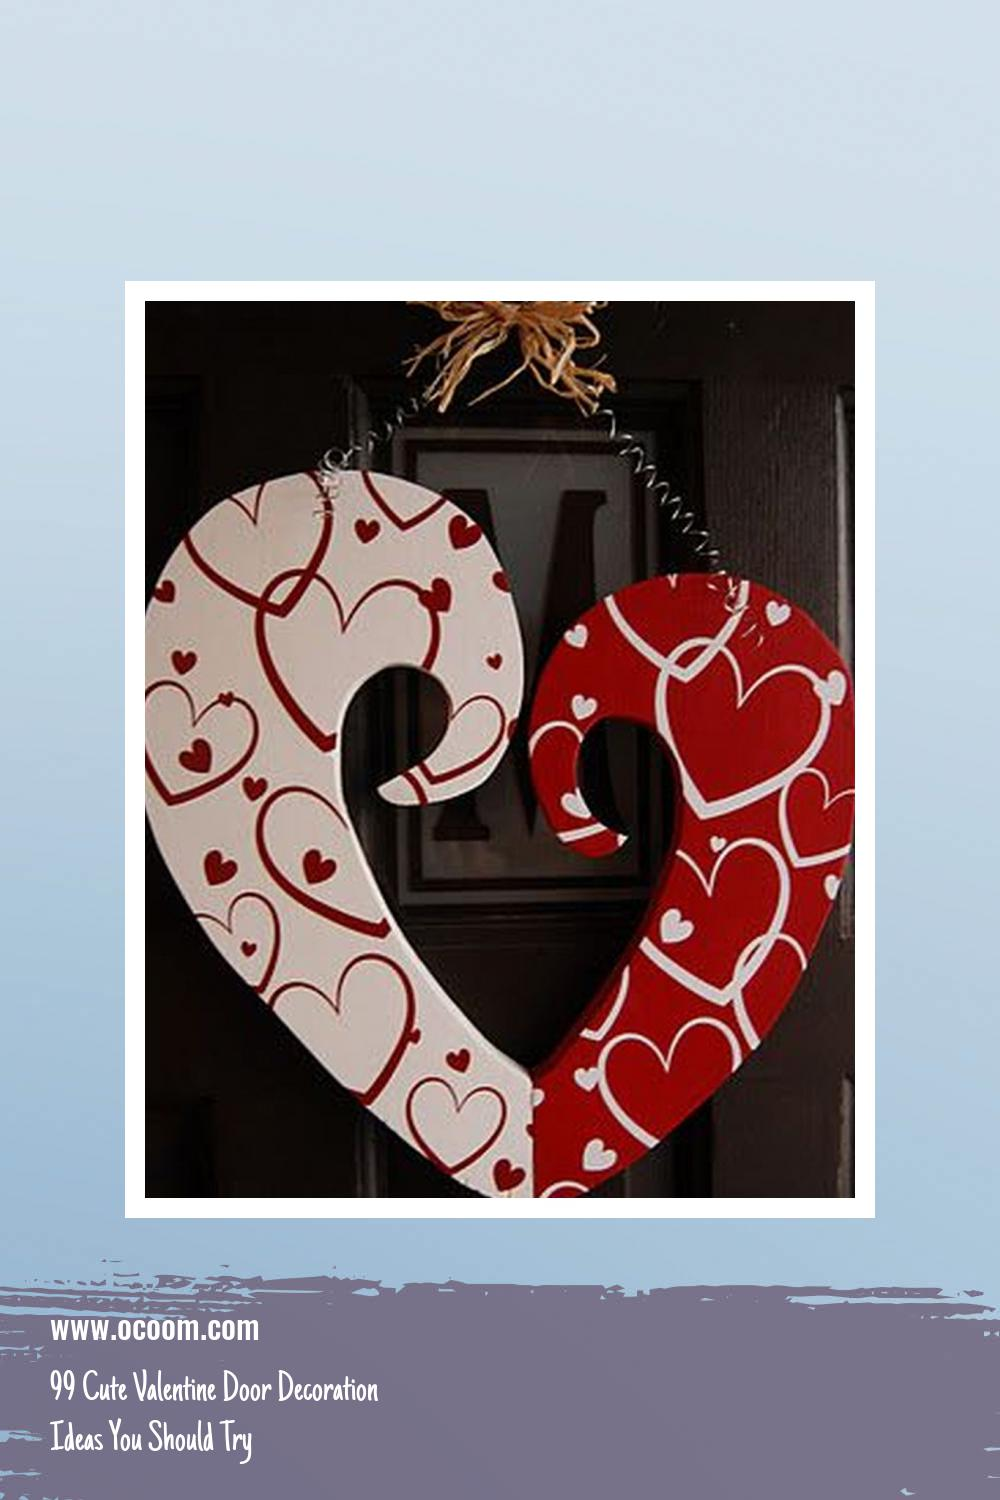 99 Cute Valentine Door Decoration Ideas You Should Try 19